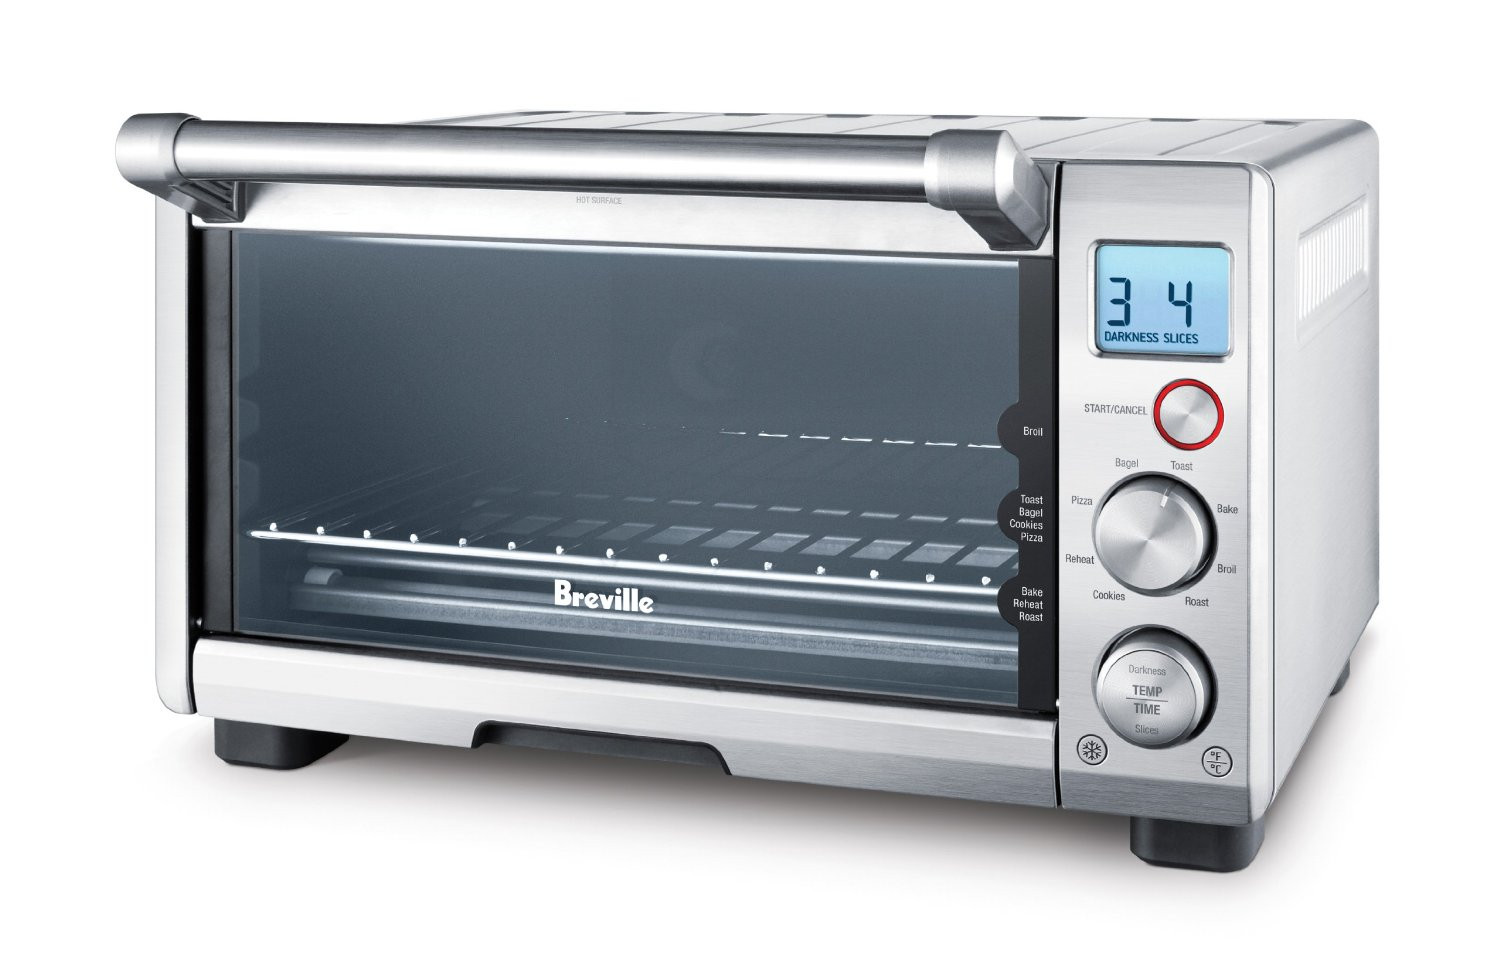 oven reviewed com right of toaster overall pro cooking ovens smart breville best now the small